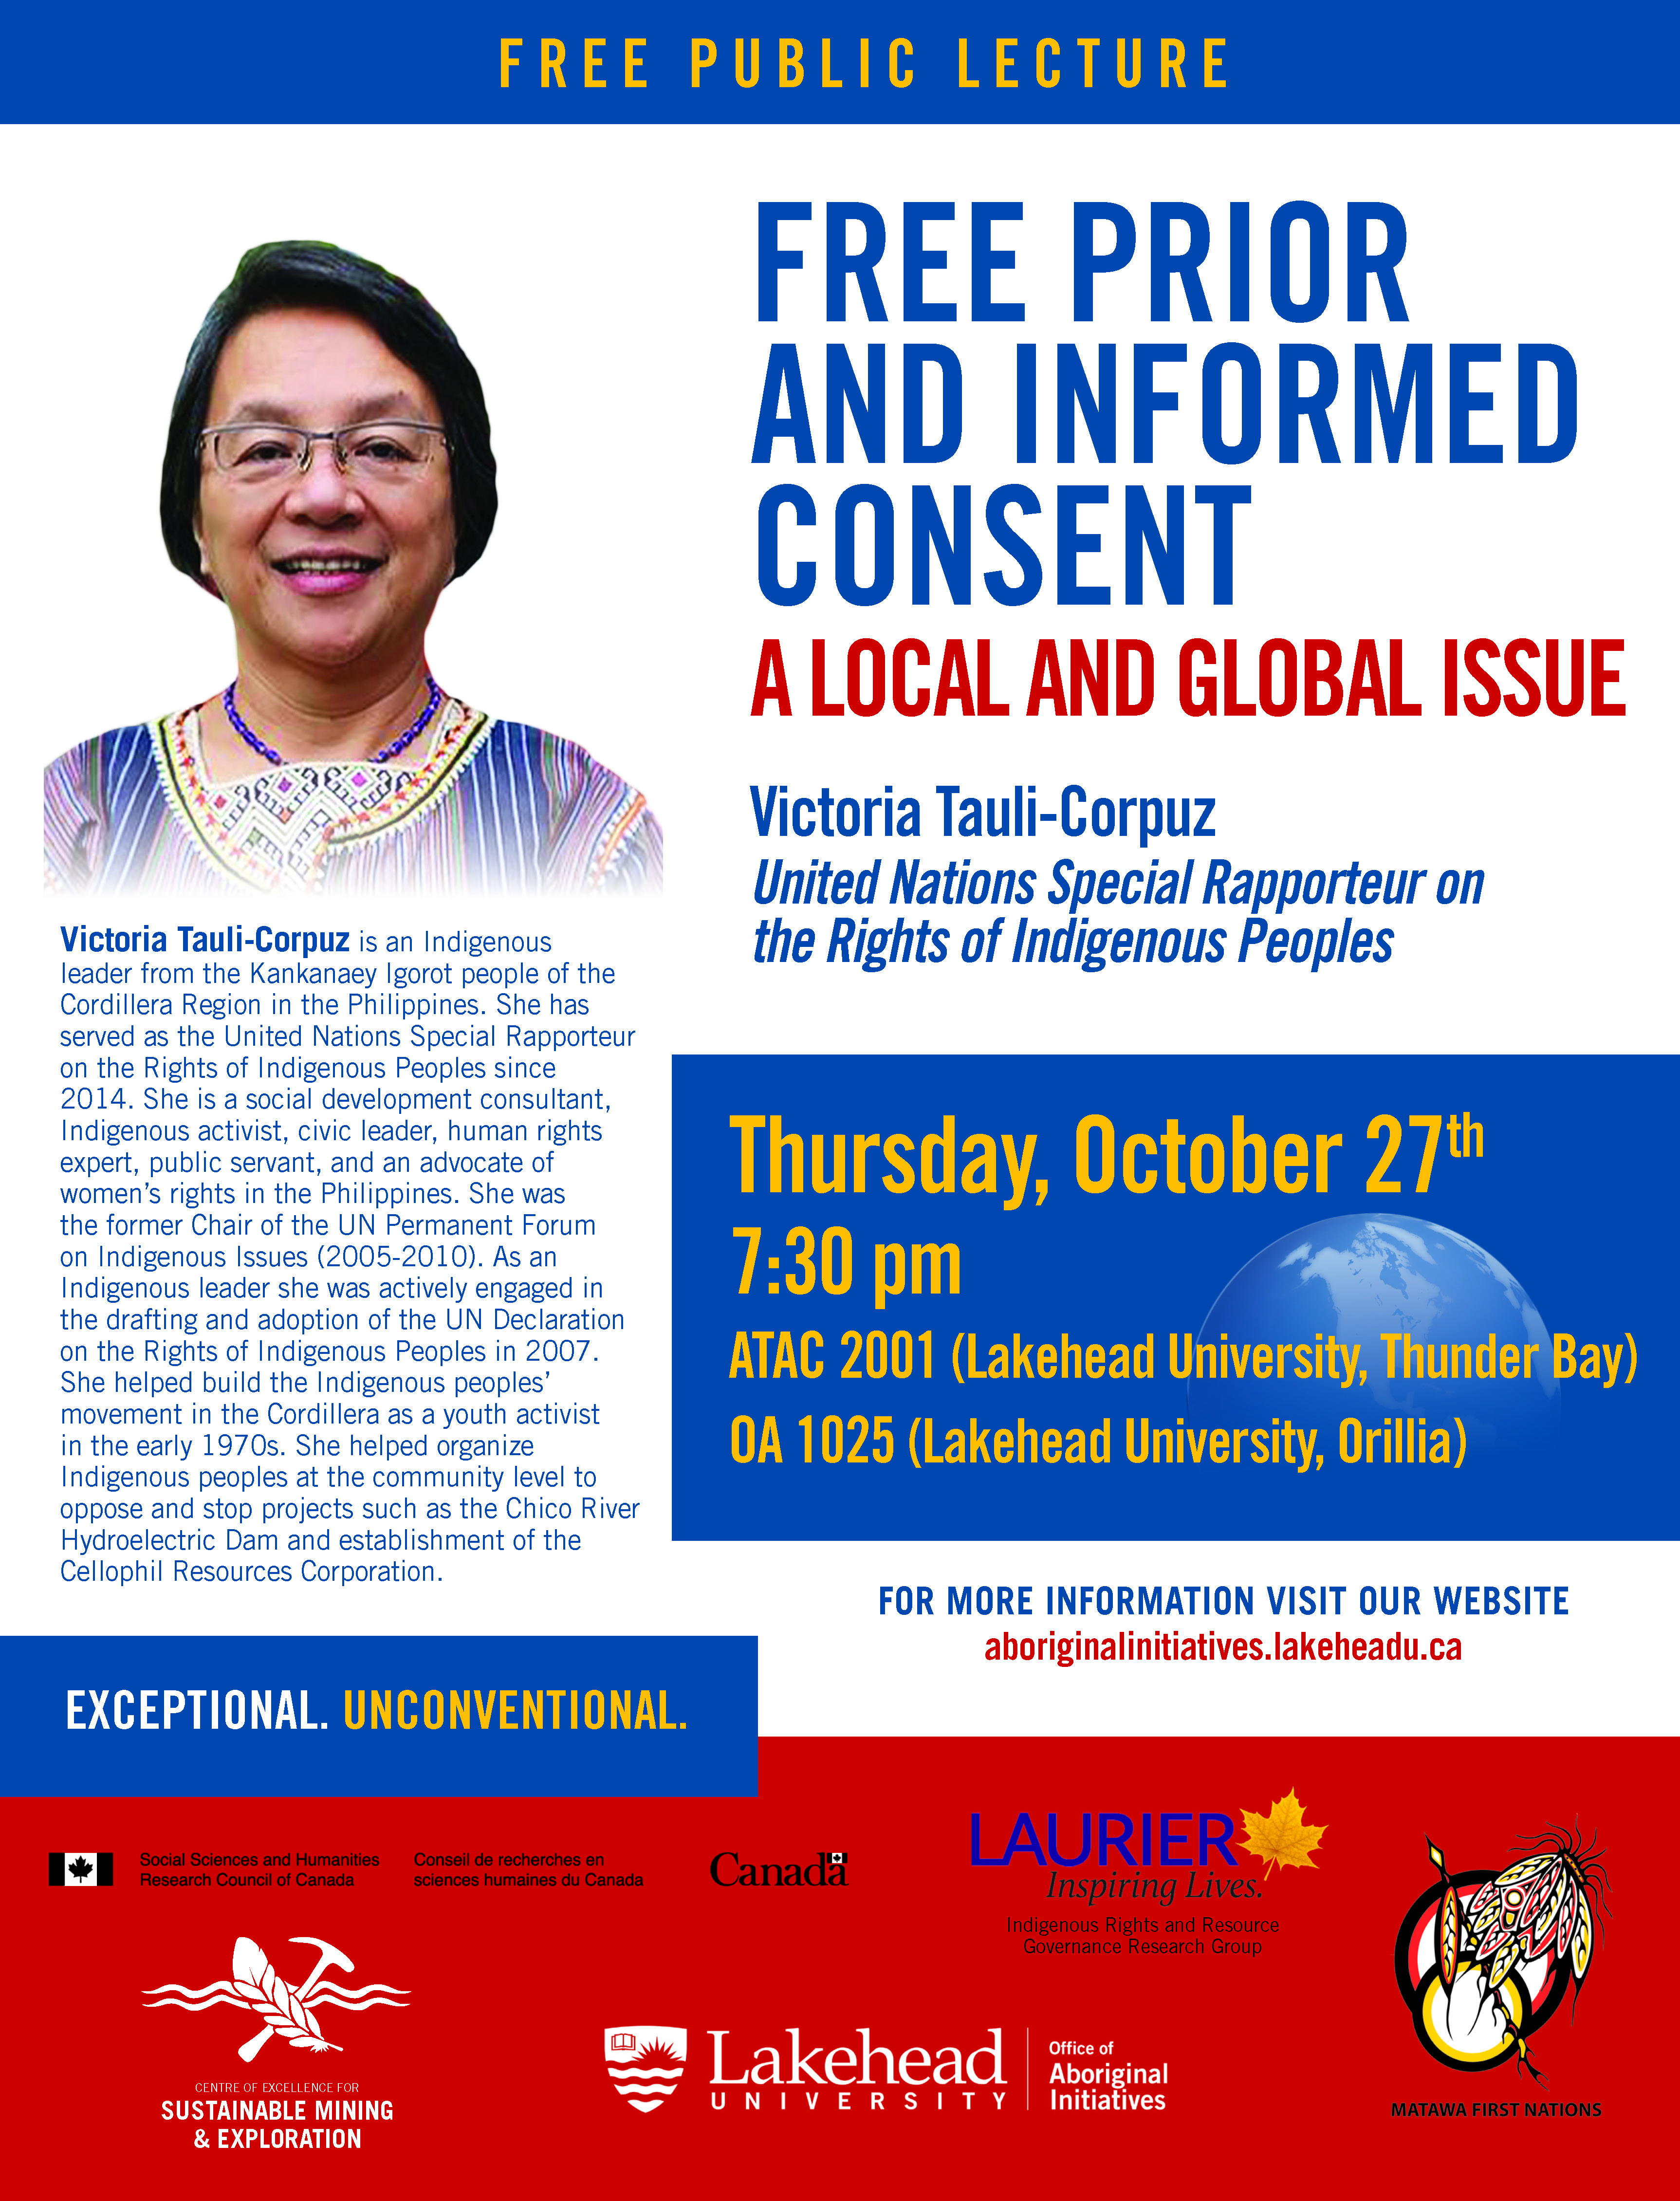 Poster of Free Prior and Informed Consent: A Local and Global Issue with Victoria Tauli-Corpuz